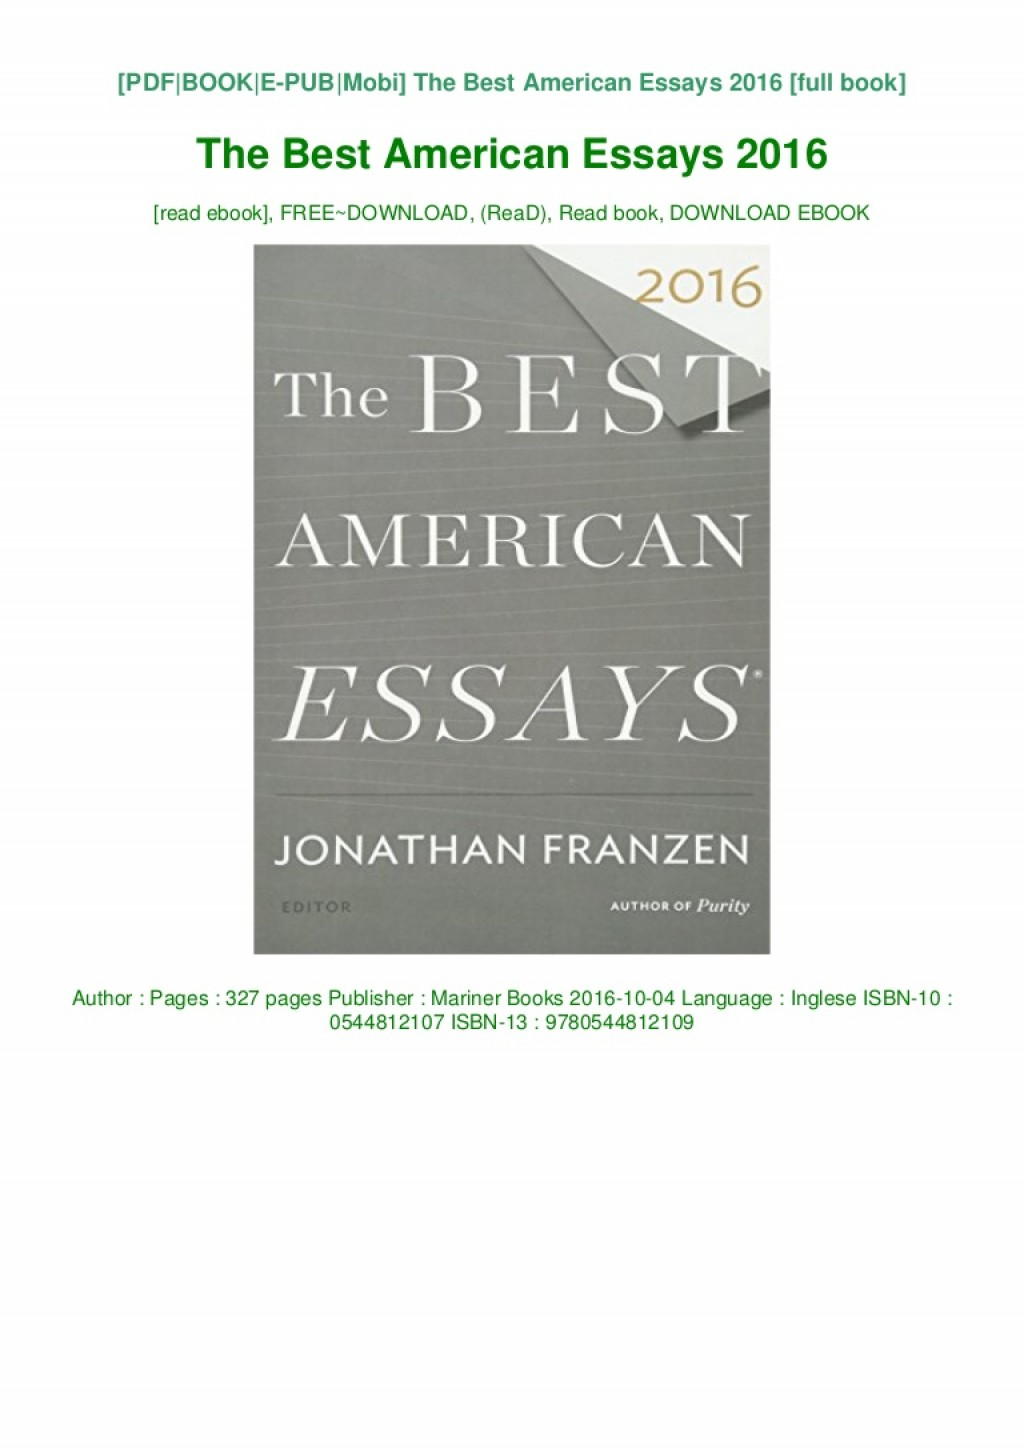 014 The Best American Essays Essay Example Download Pdf Epub Audiobook Ebook Thumbnail Wonderful 2018 2017 Table Of Contents 2015 Free Large